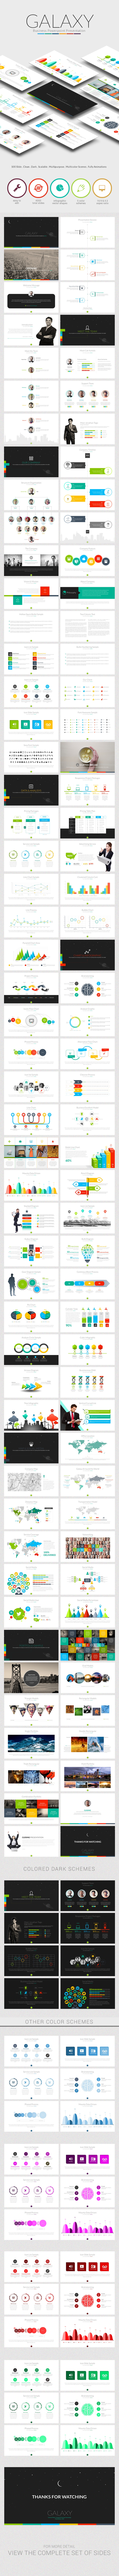 Galaxy Business Powerpoint